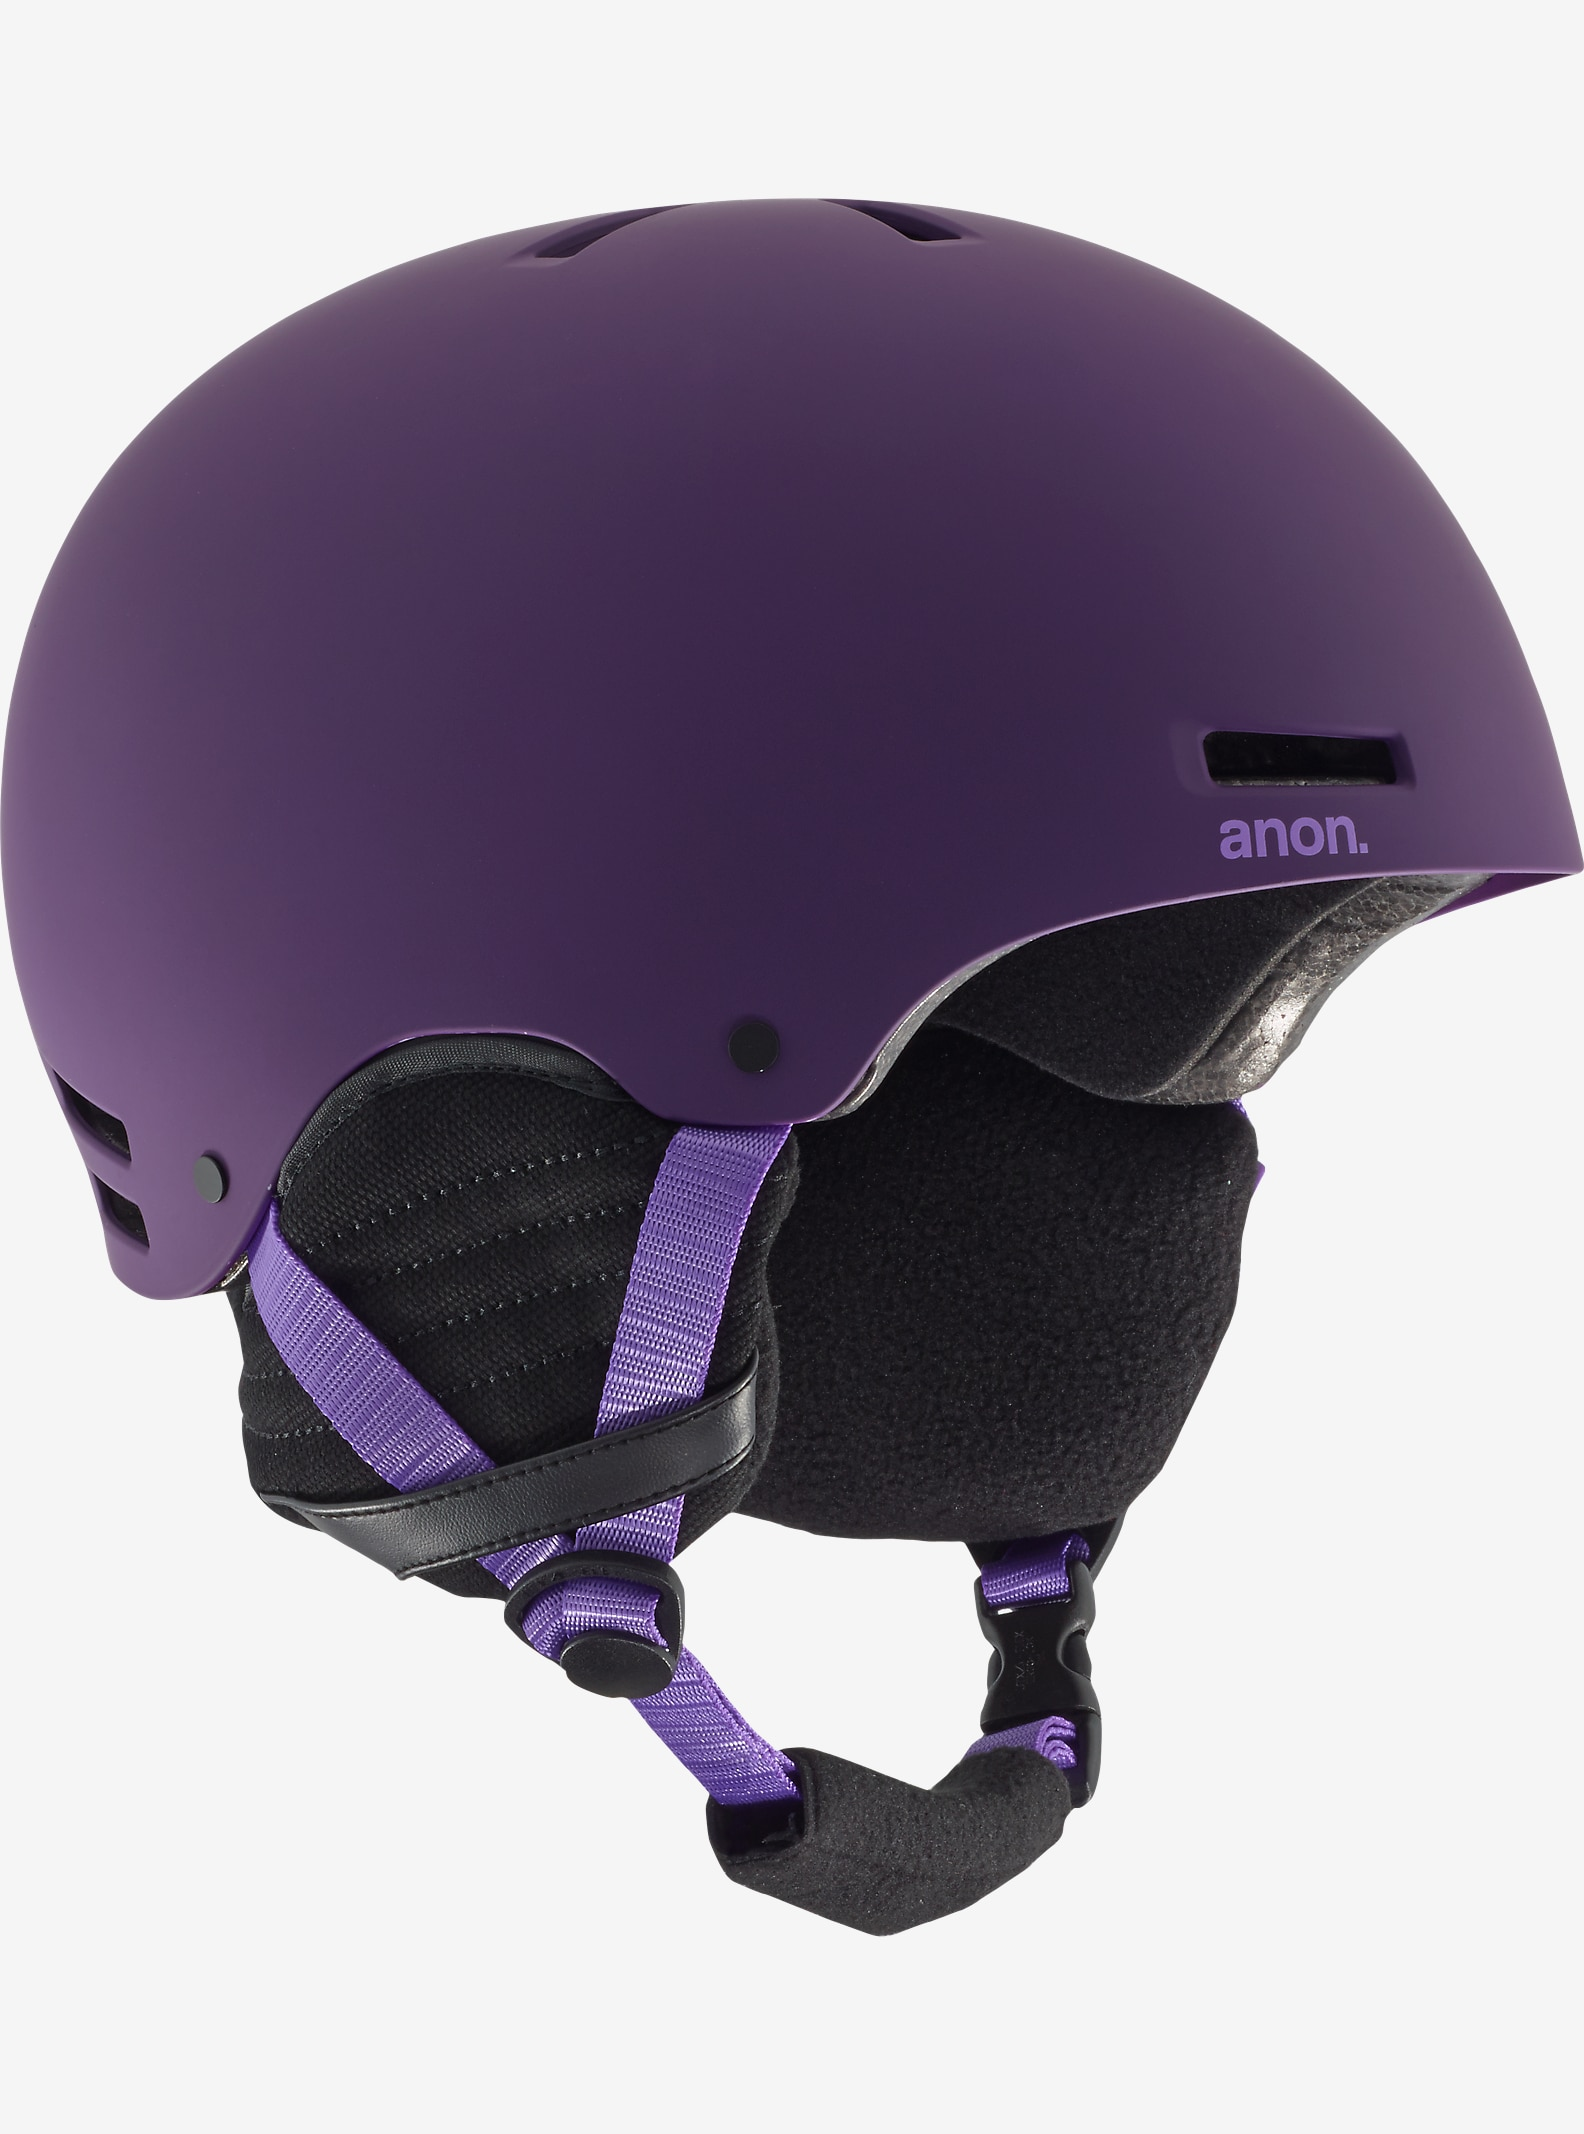 anon. - Casque Greta affichage en Imperial Purple